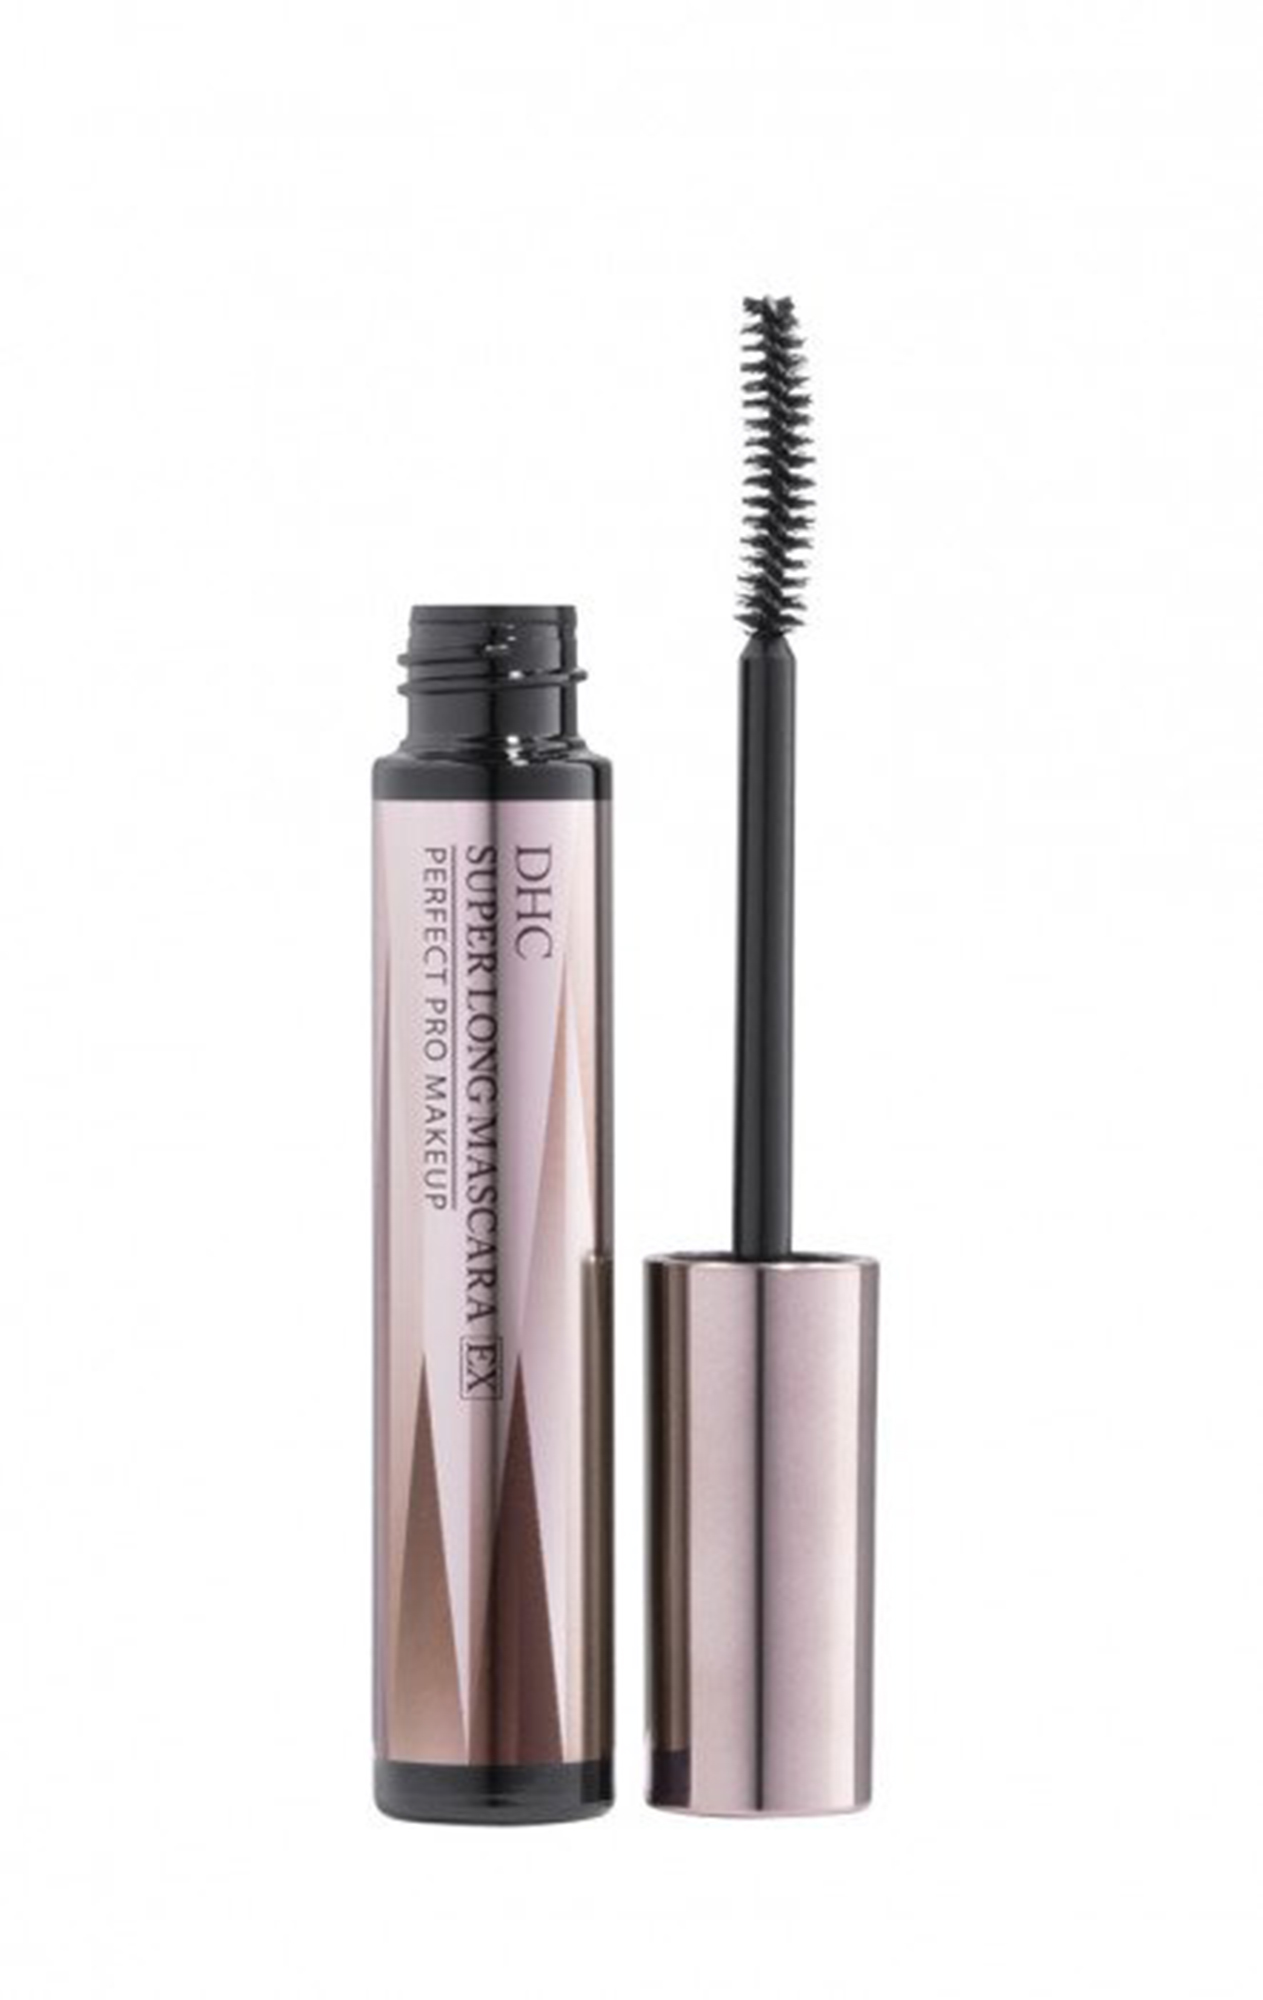 10 Long-Wearing Beauty Products to Up Your Date Night Confidence - This water-resistant Japanese lengthening formula blends three different lengths of flake-free volumizing fibers for your flirtiest lashes yet. $22, dhccare.com